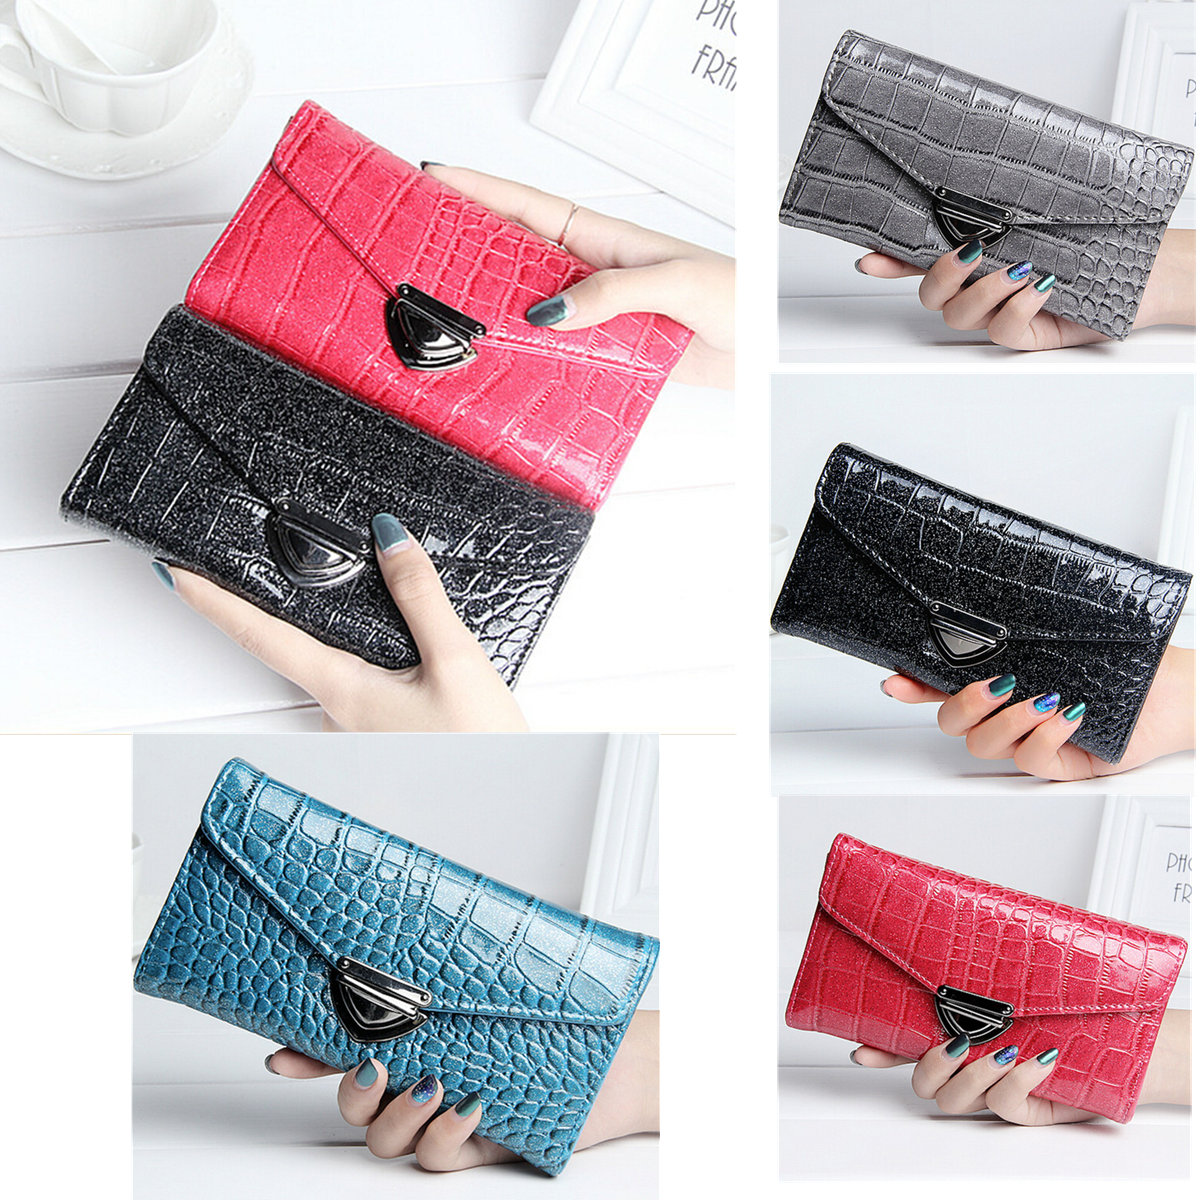 Crocodile PU Leather Long Wallet Card Holder Purse Phone Bag for under 5.5 inches Smartphone